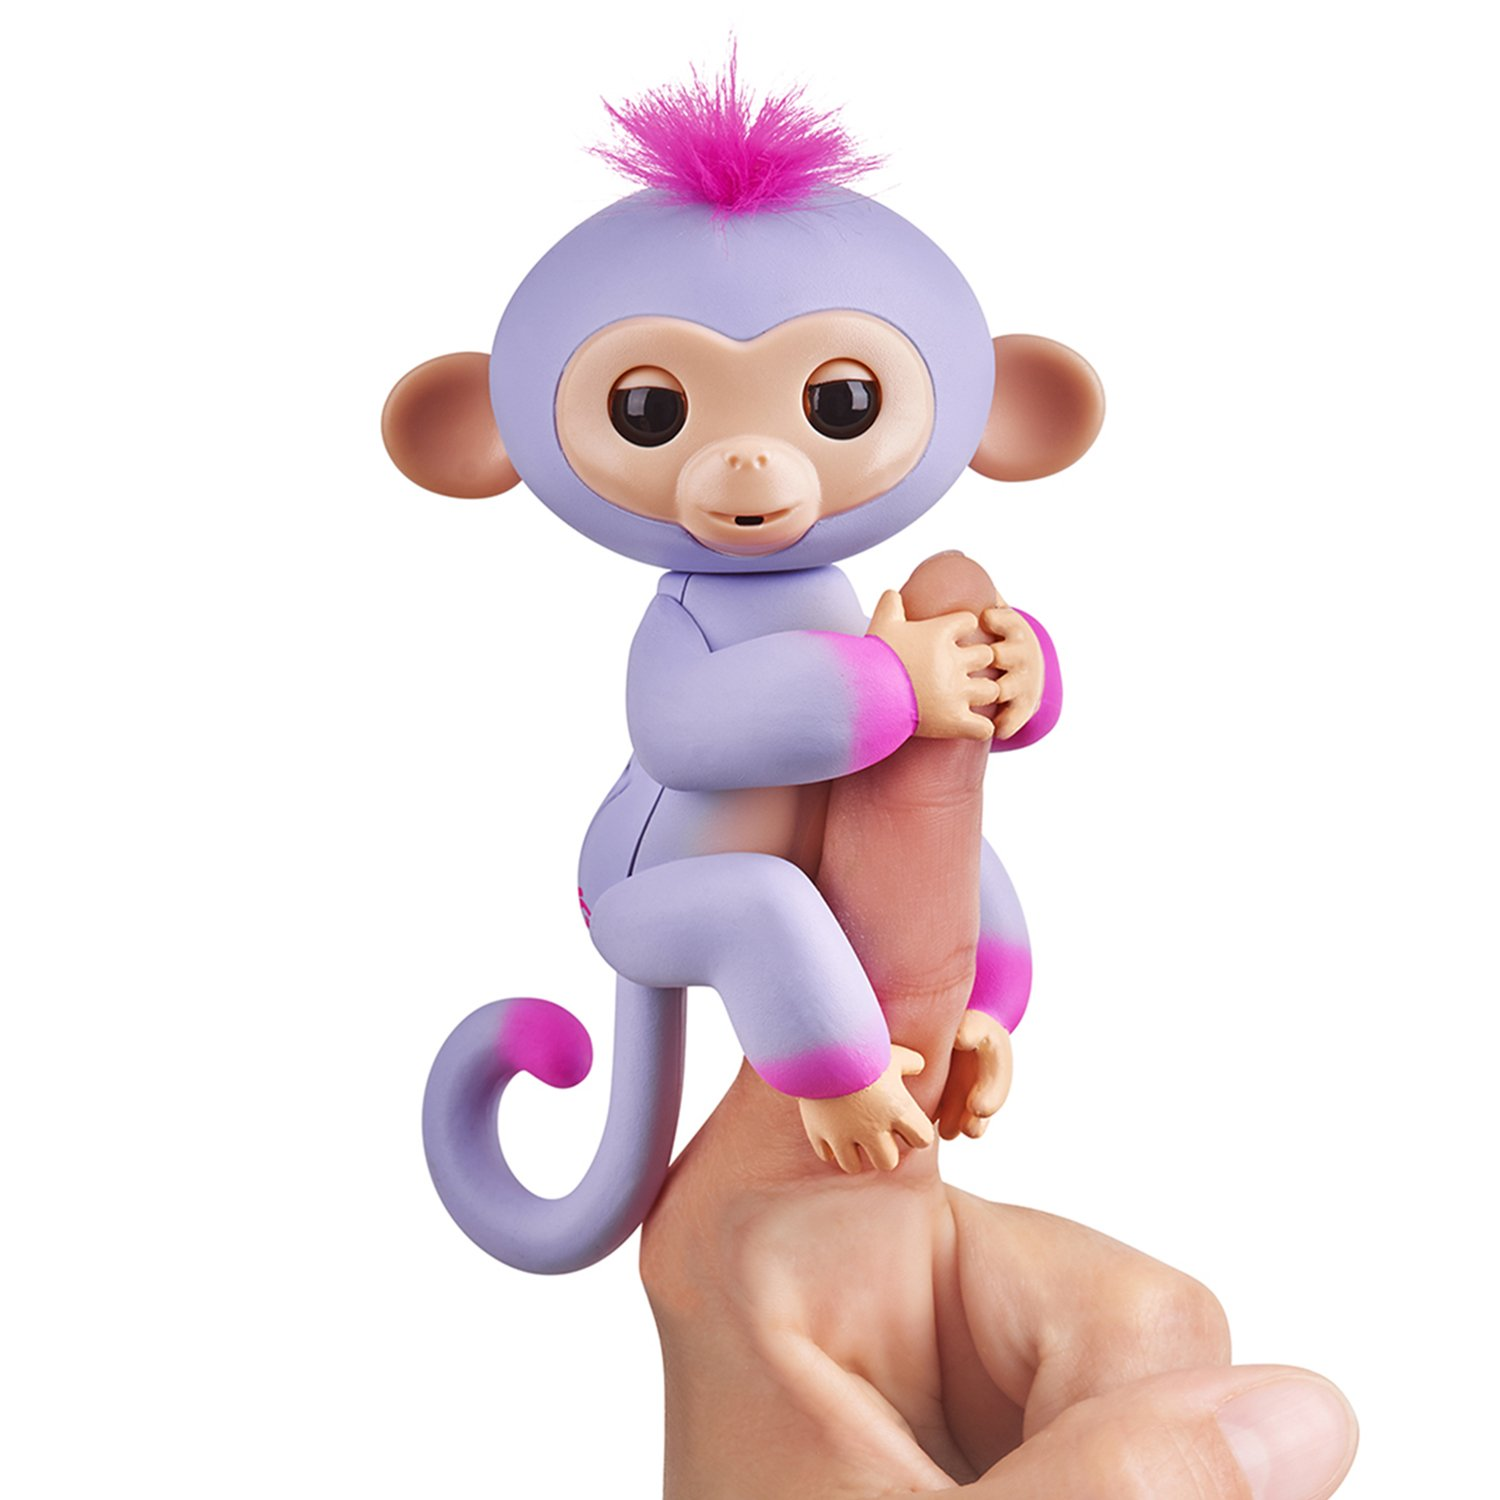 Fingerlings 2Tone Monkey - Summer (Pink with Orange Accents) - Interactive Baby Pet WowWee Import 3725